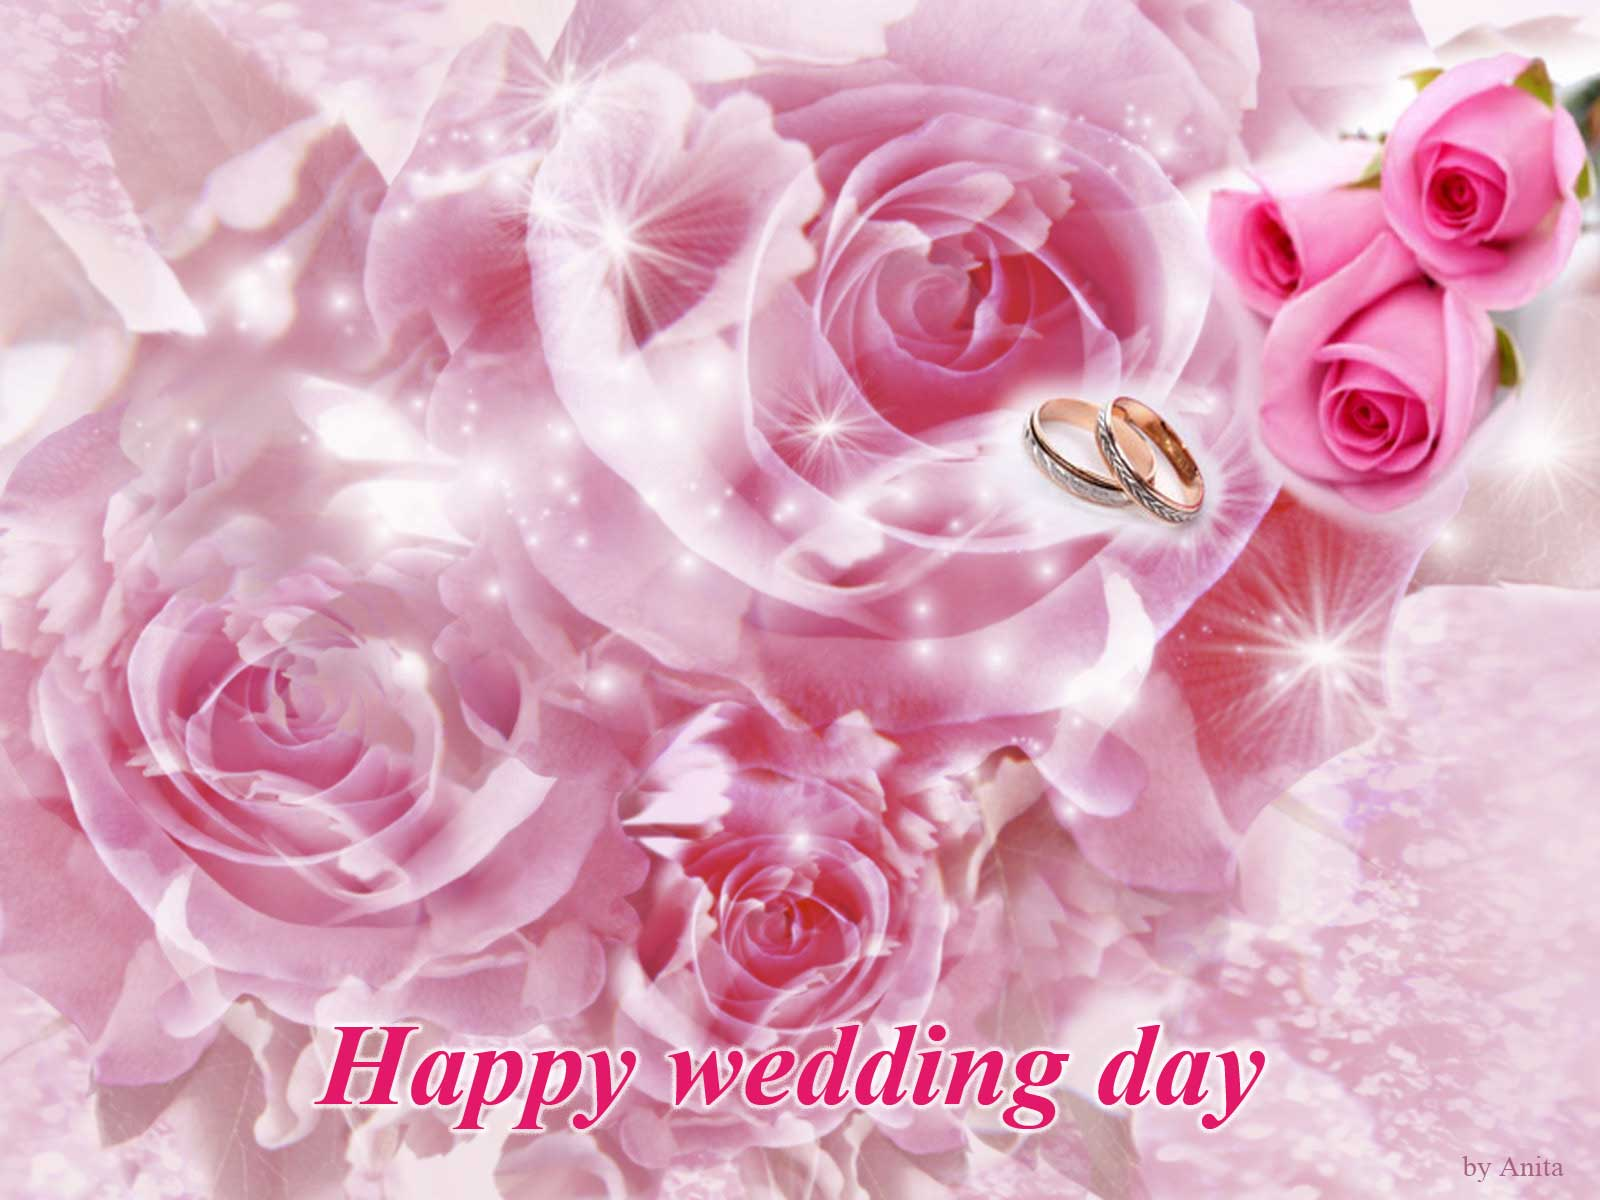 ofhappyweddingdaywithdoves Wallpapers Happy Wedding Day 1600x1200